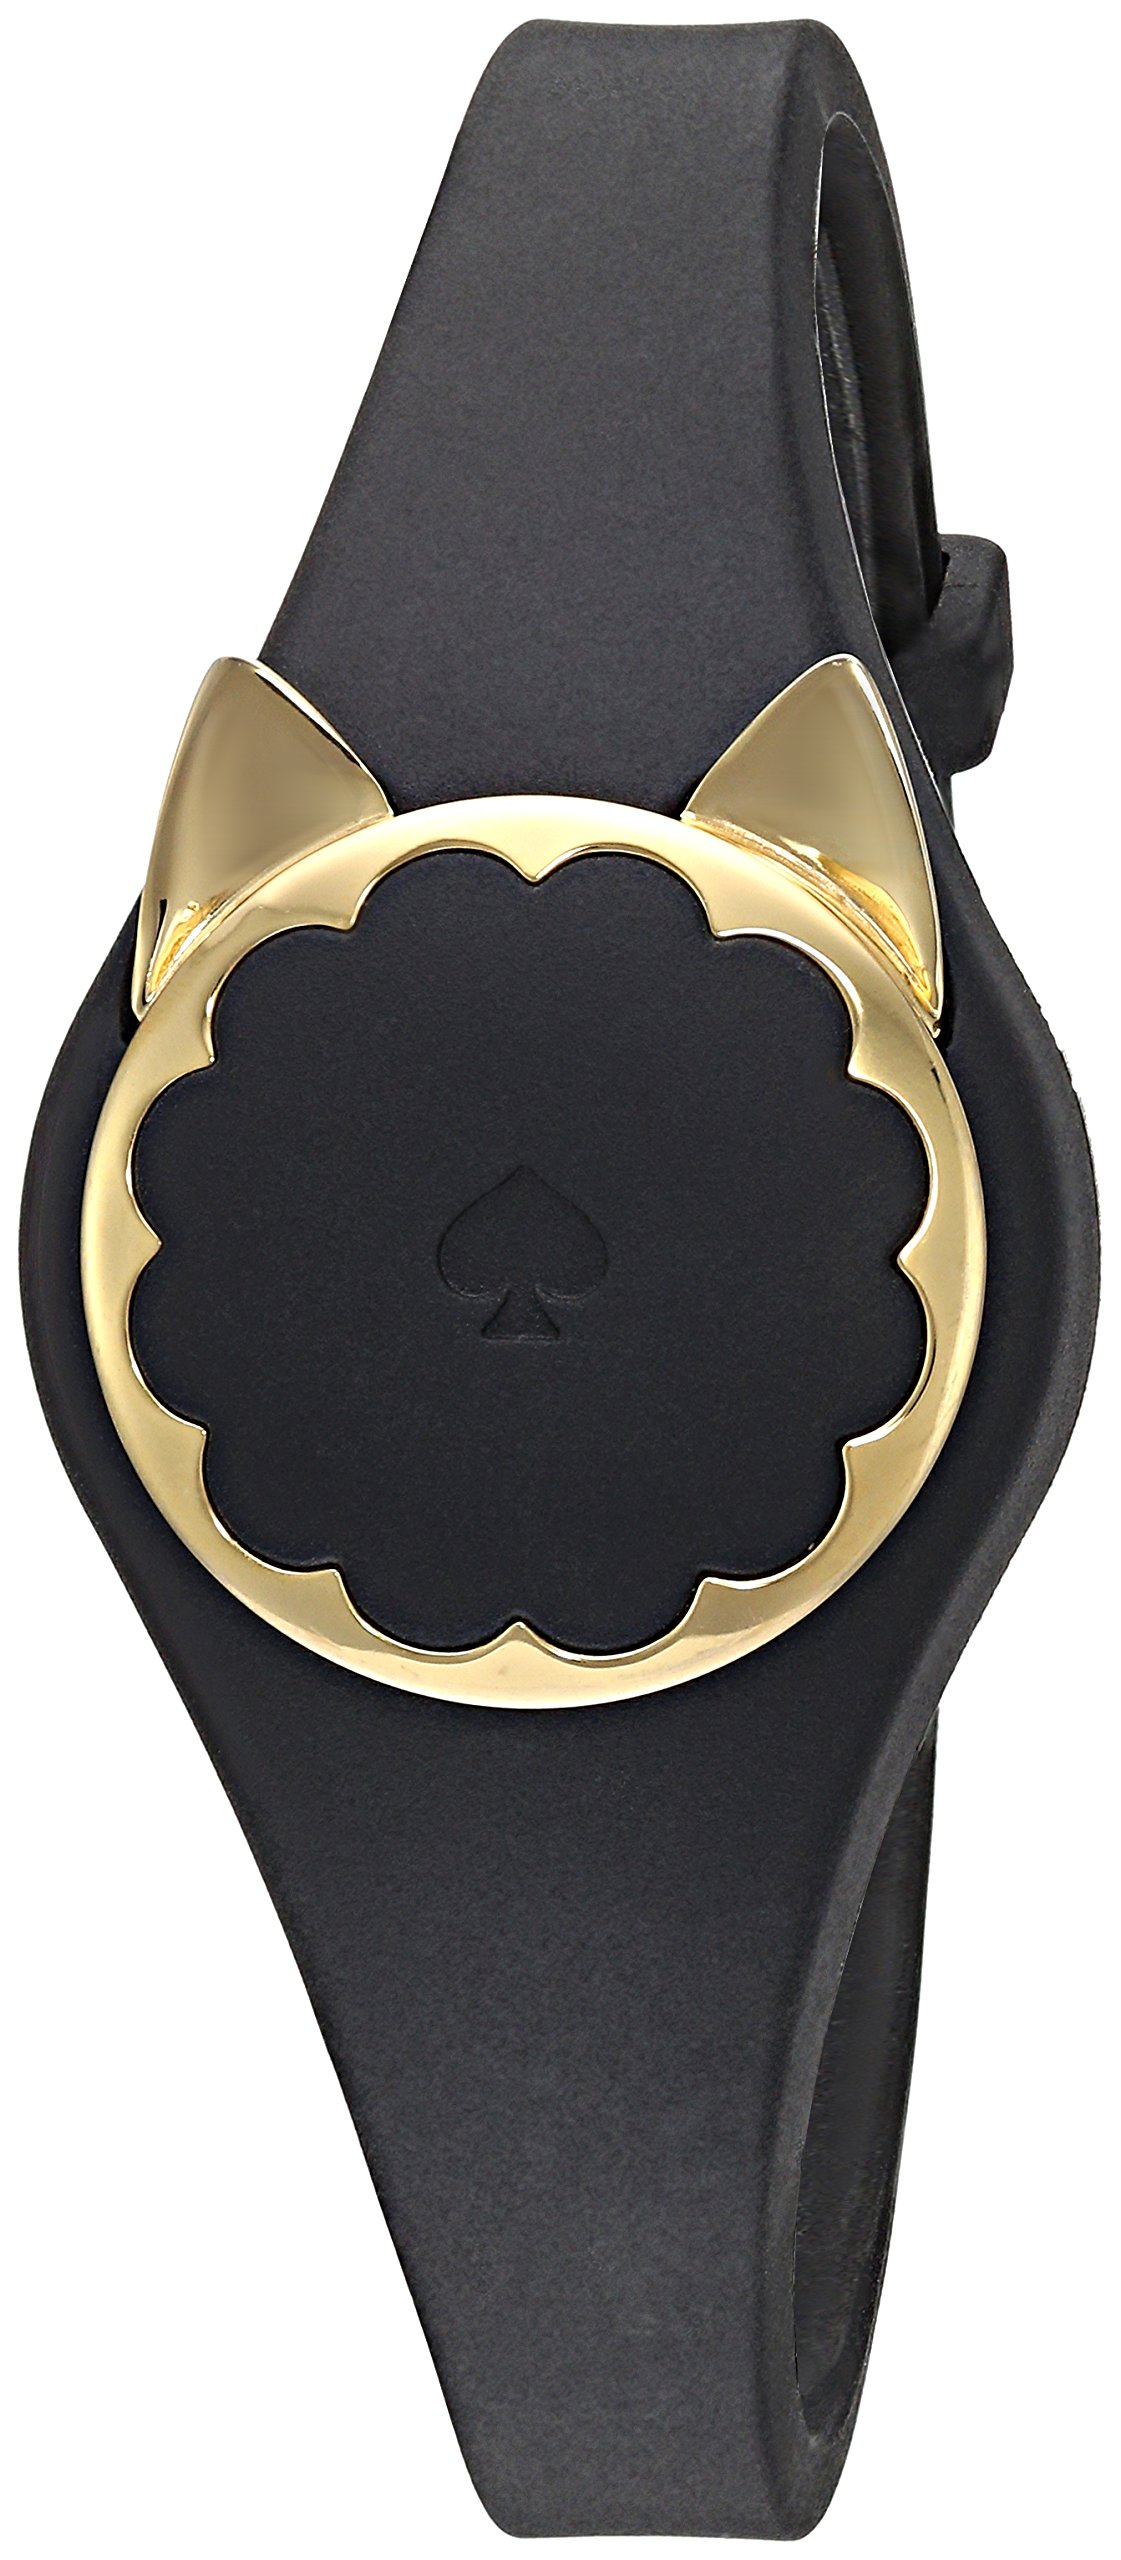 Kate Spade New York black cat scallop activity tracker